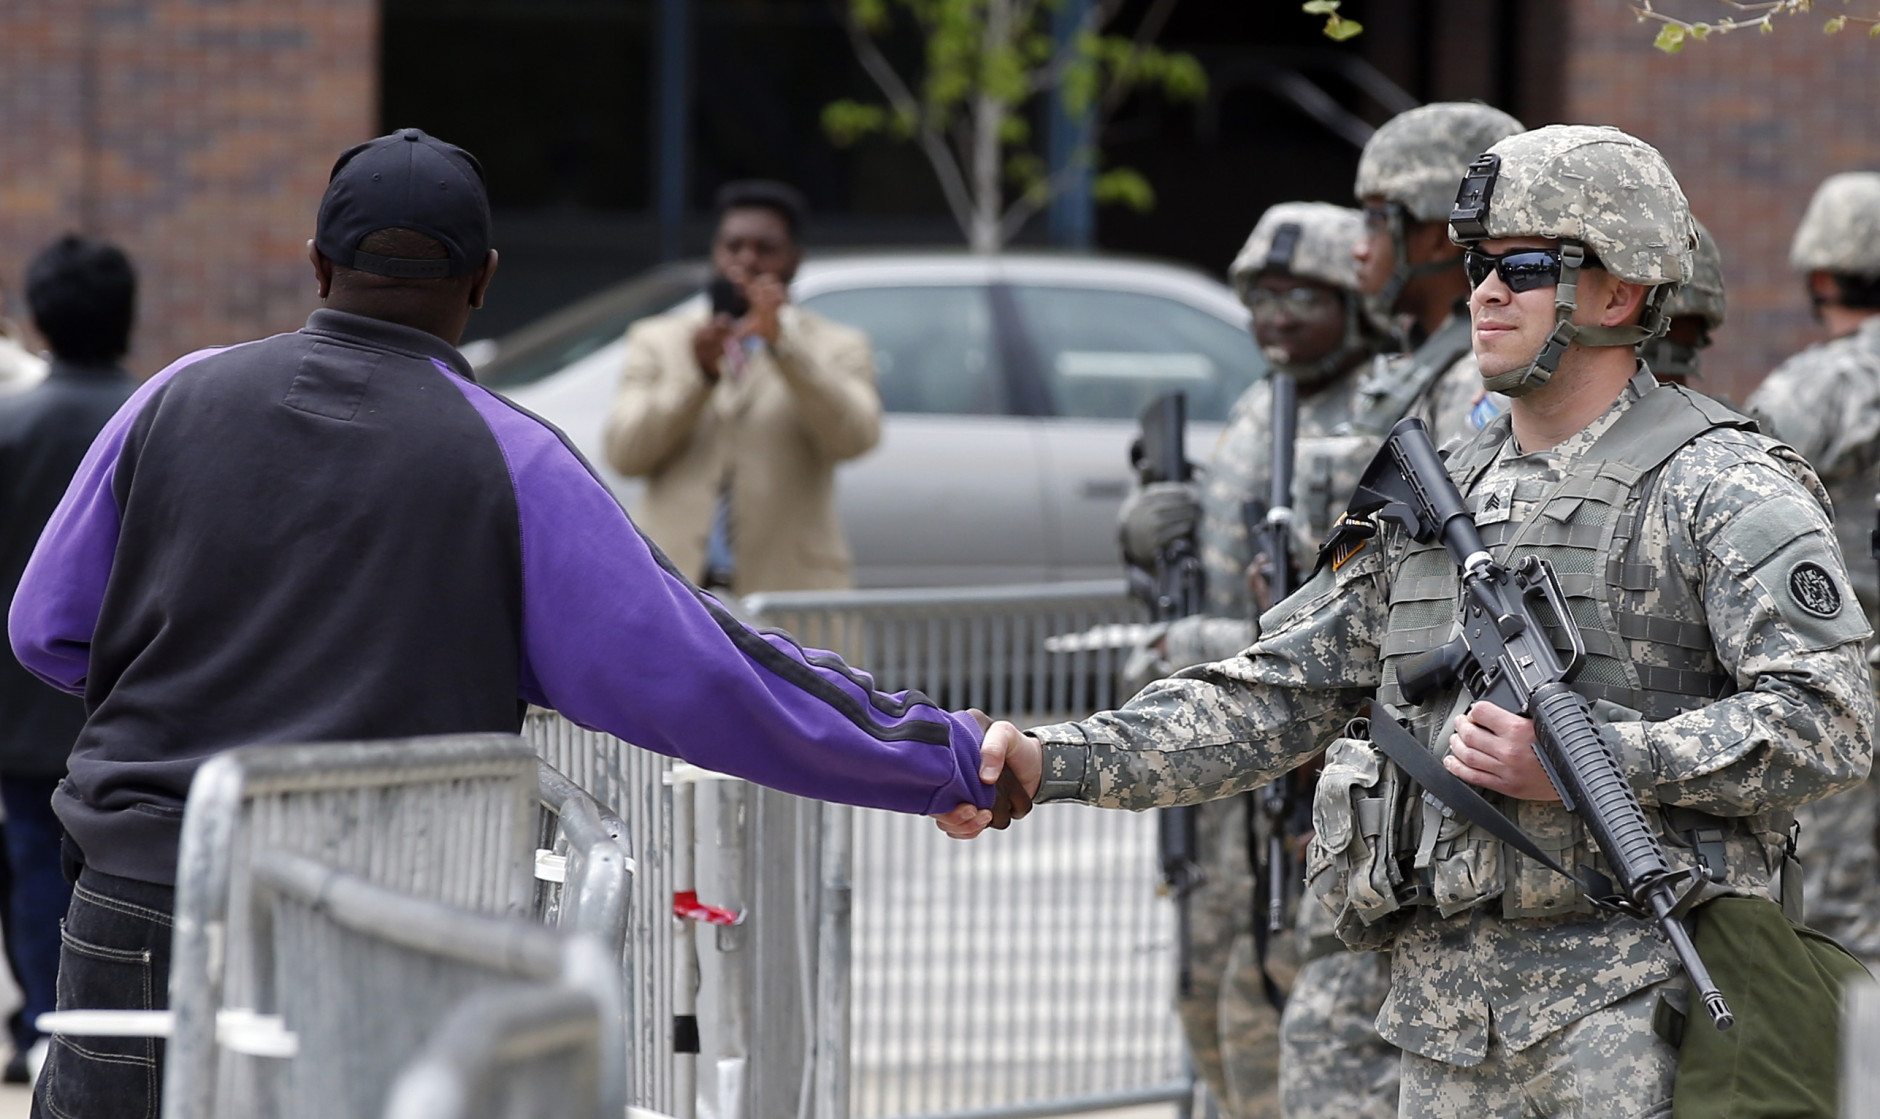 A man shakes hands with a National Guard soldier outside City Hall, Friday, May 1, 2015 in Baltimore. State's Attorney Marilyn J. Mosby announced criminal charges Friday,  against all six officers suspended after Freddie Gray suffered a fatal spinal injury in police custody. Mosby announced the stiffest charge, second-degree depraved heart murder,  against the driver of the police van. Other officers faced charges of involuntary manslaughter, assault and illegal arrest.  (AP Photo/Alex Brandon)